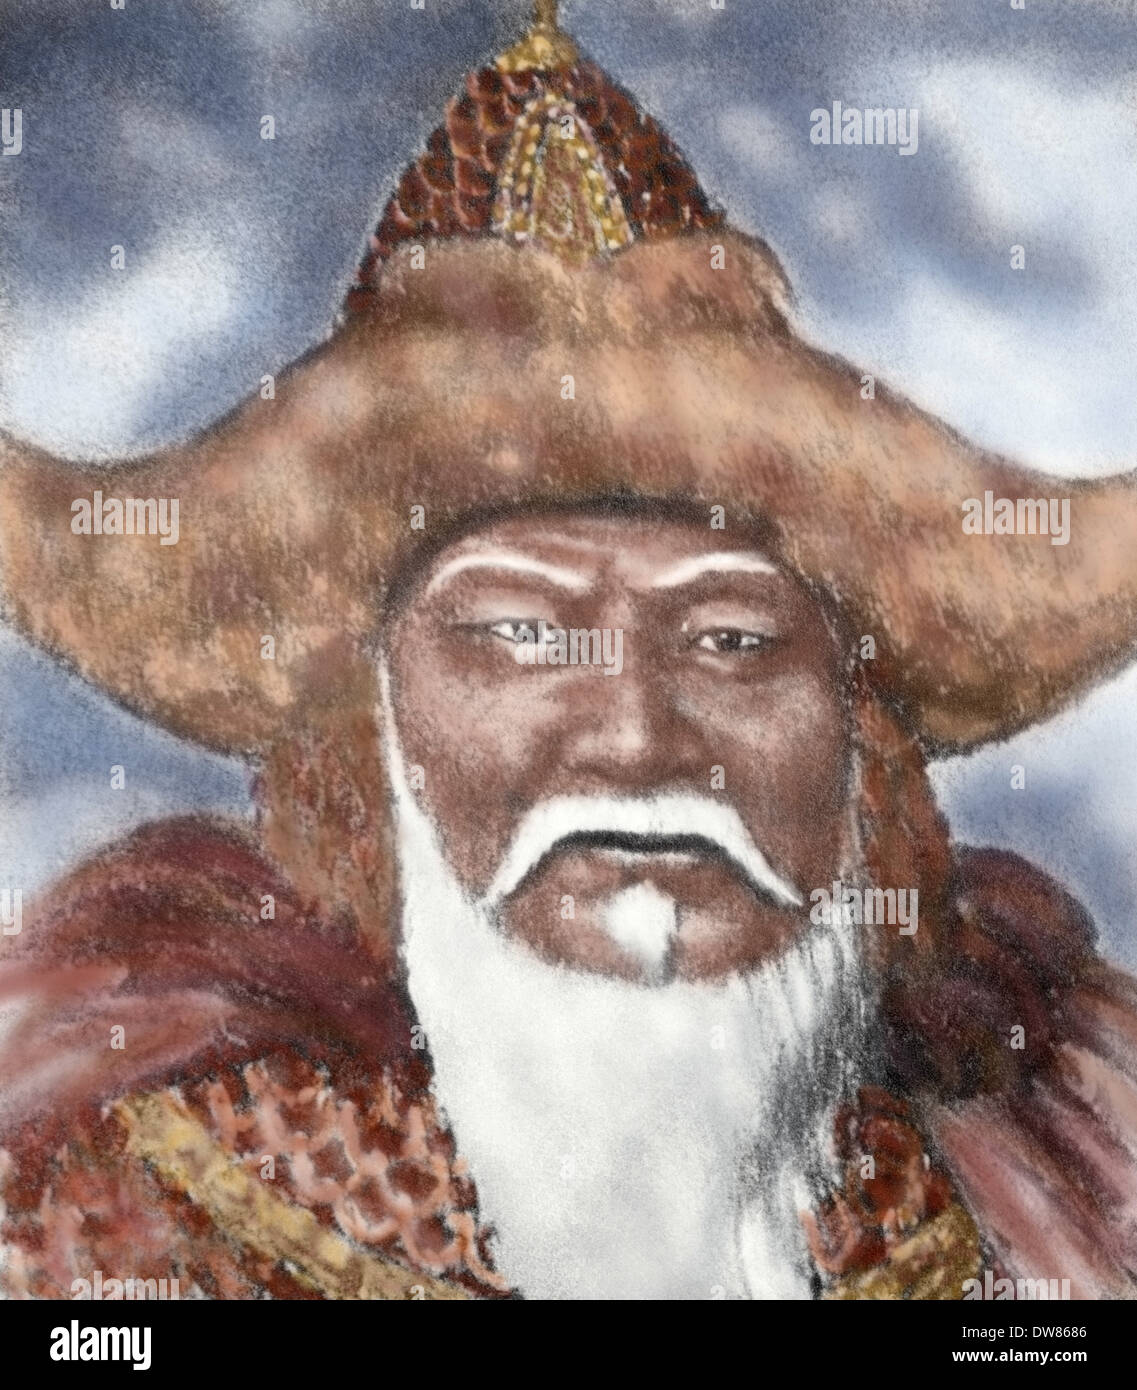 Genghis Khan (1162-1227). Emperor of Mogol Empire. Engraving. Colored. - Stock Image